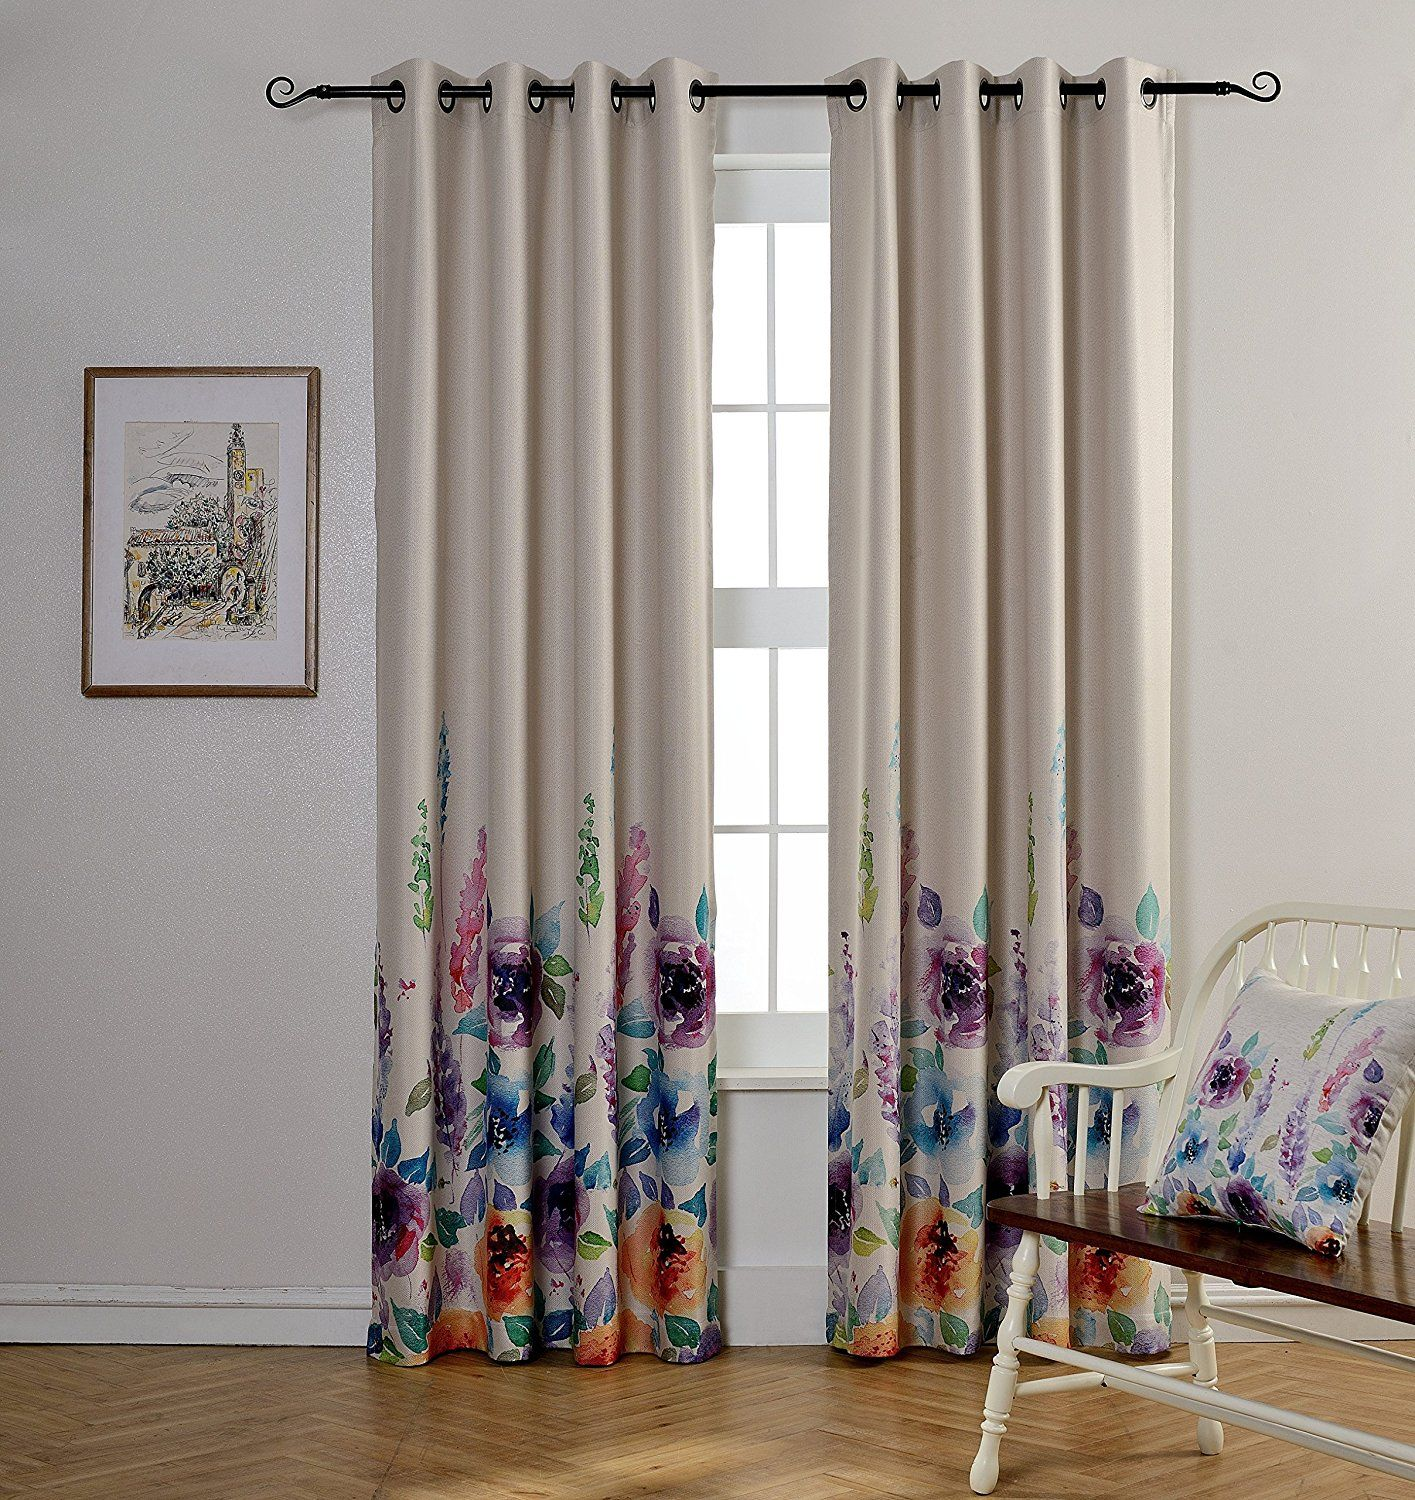 curtains thermal curtain target soundproof coral inch blackout table amazon drapes pertaining to beautiful